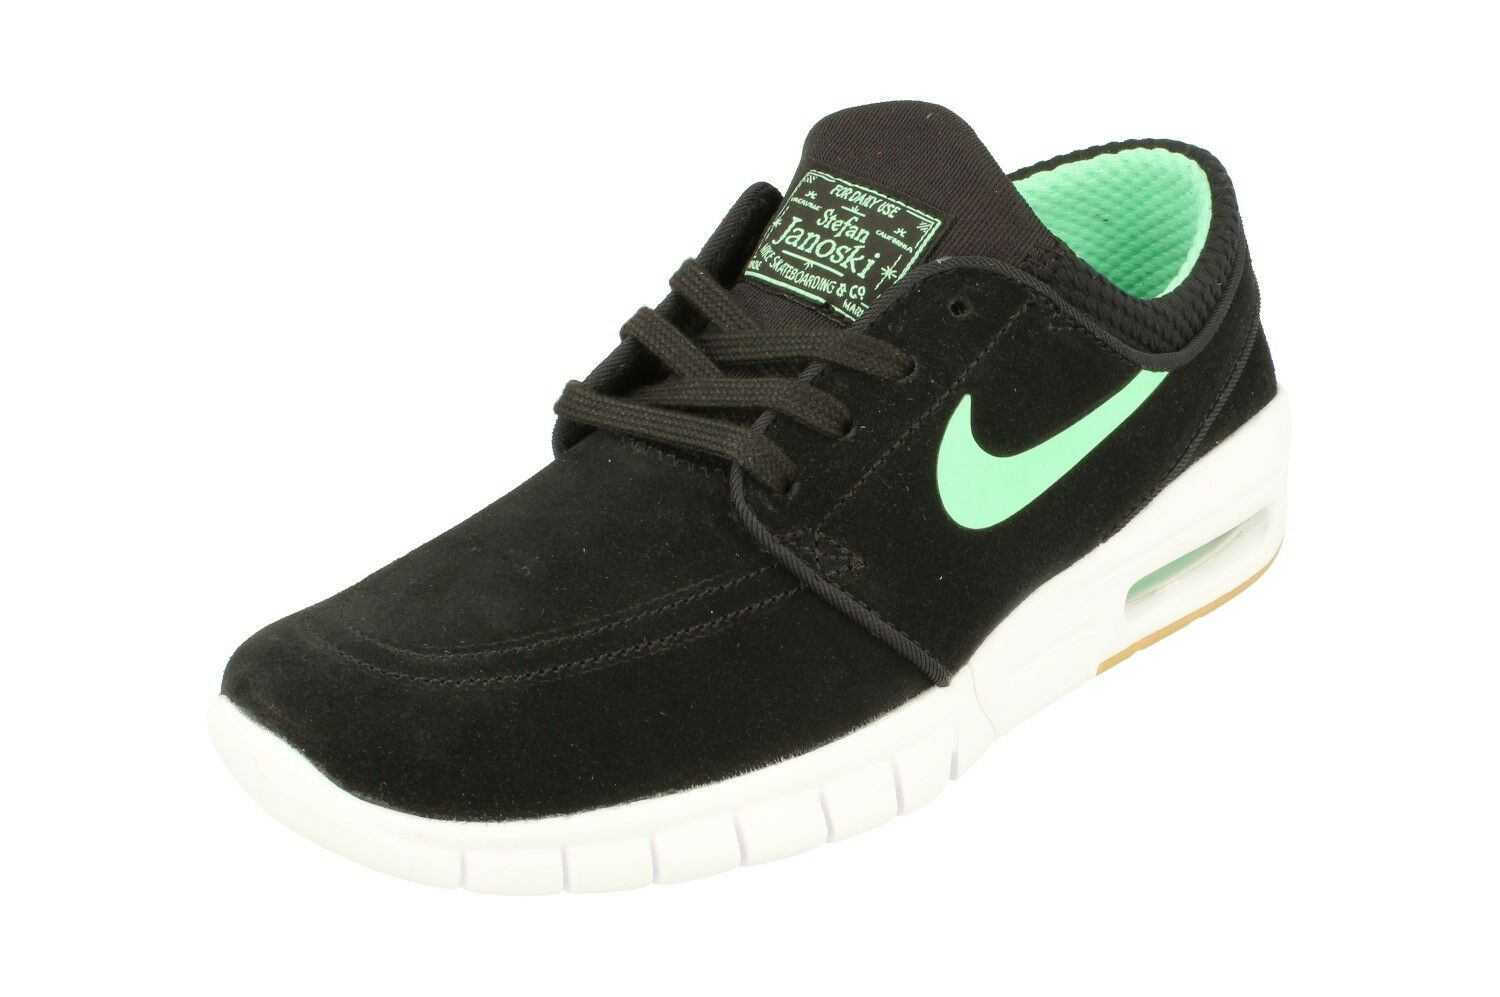 huge discount 8ebbd bcee6 ... reduced nike sb stefan janoski max l 685299 mens trainers 685299 l  sneakers shoes 039 6a7d77